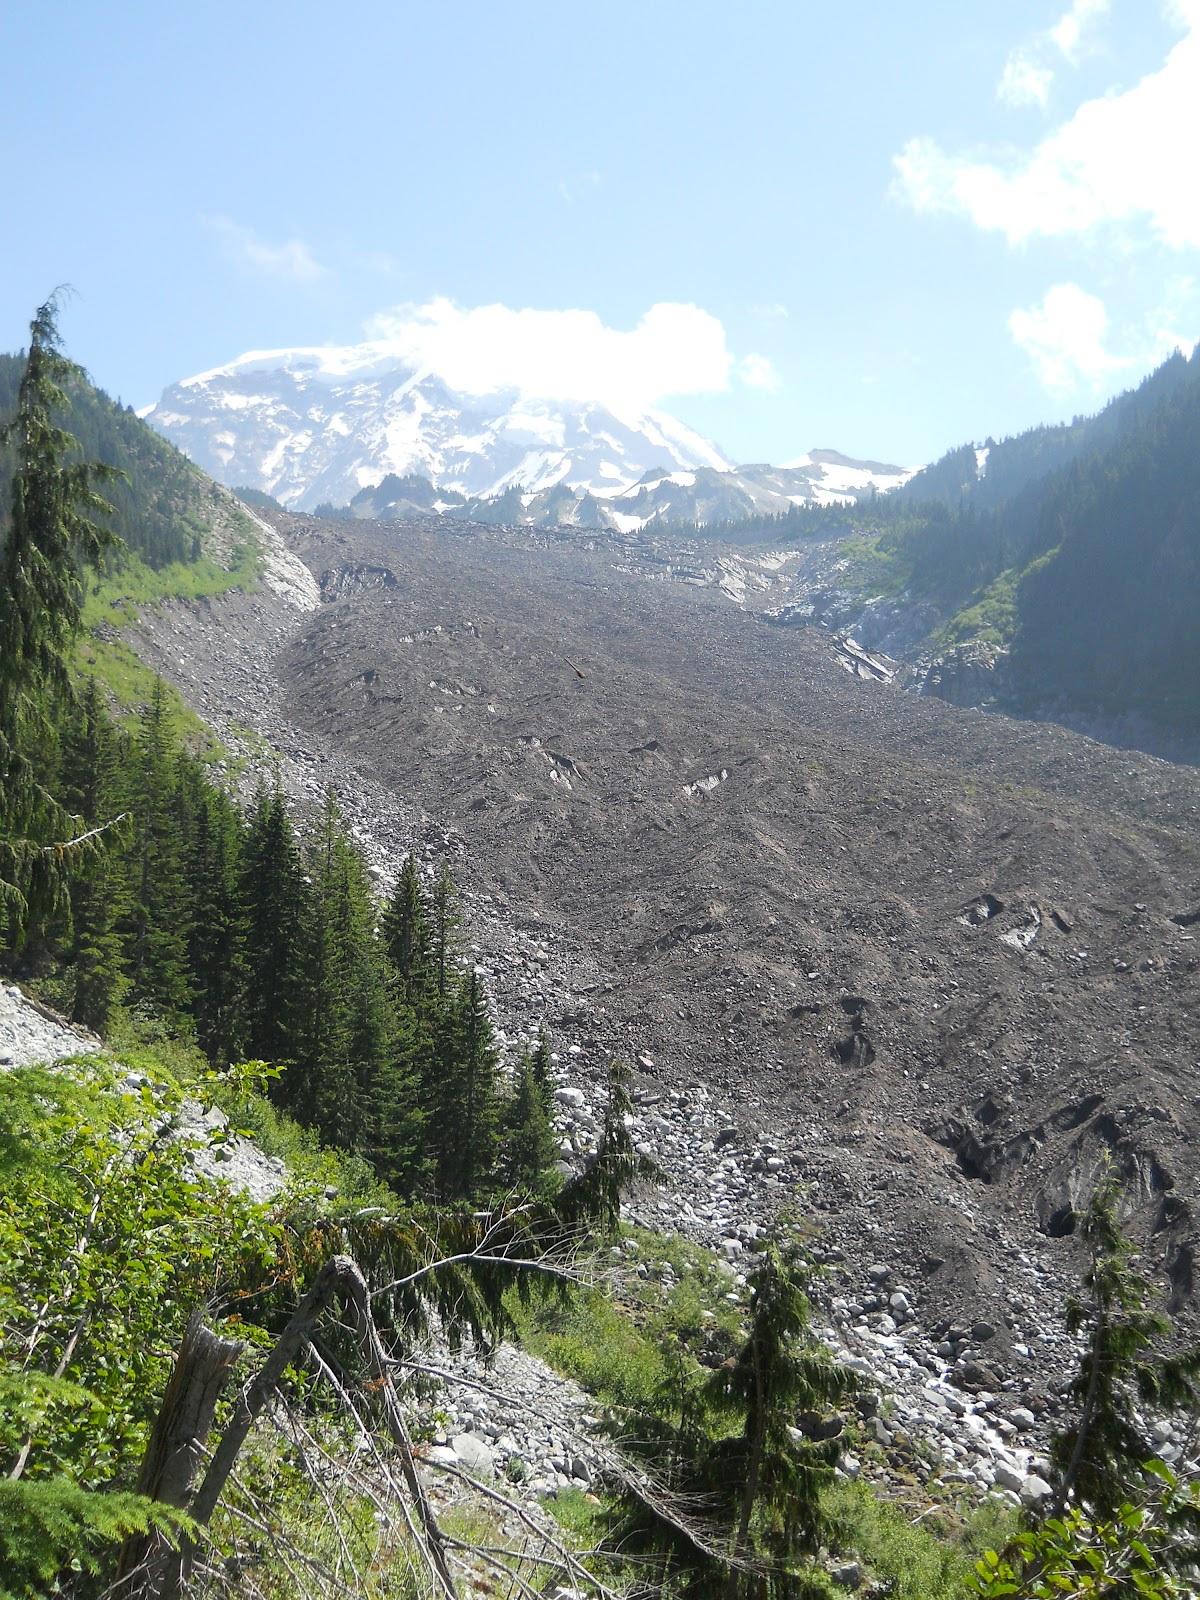 carbon dating glaciers As ice age ended, greenhouse gas rise was lead factor improved dating methods reveal that the rise in carbon dioxide retreat of glaciers was rising carbon.